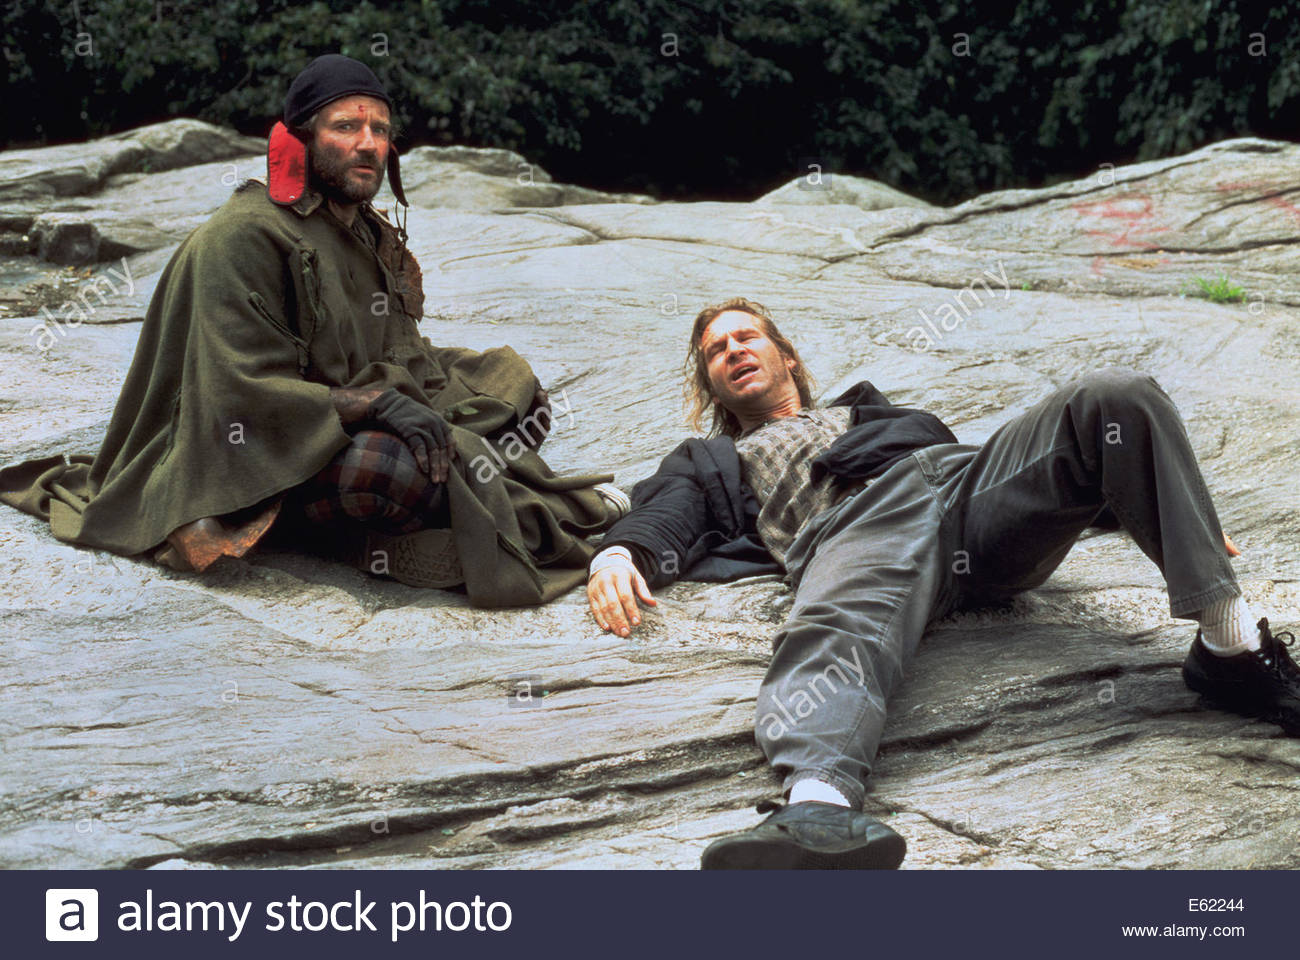 THE FISHER KING (1991)  Courtesy Granamour Weems Collection. - Stock Image